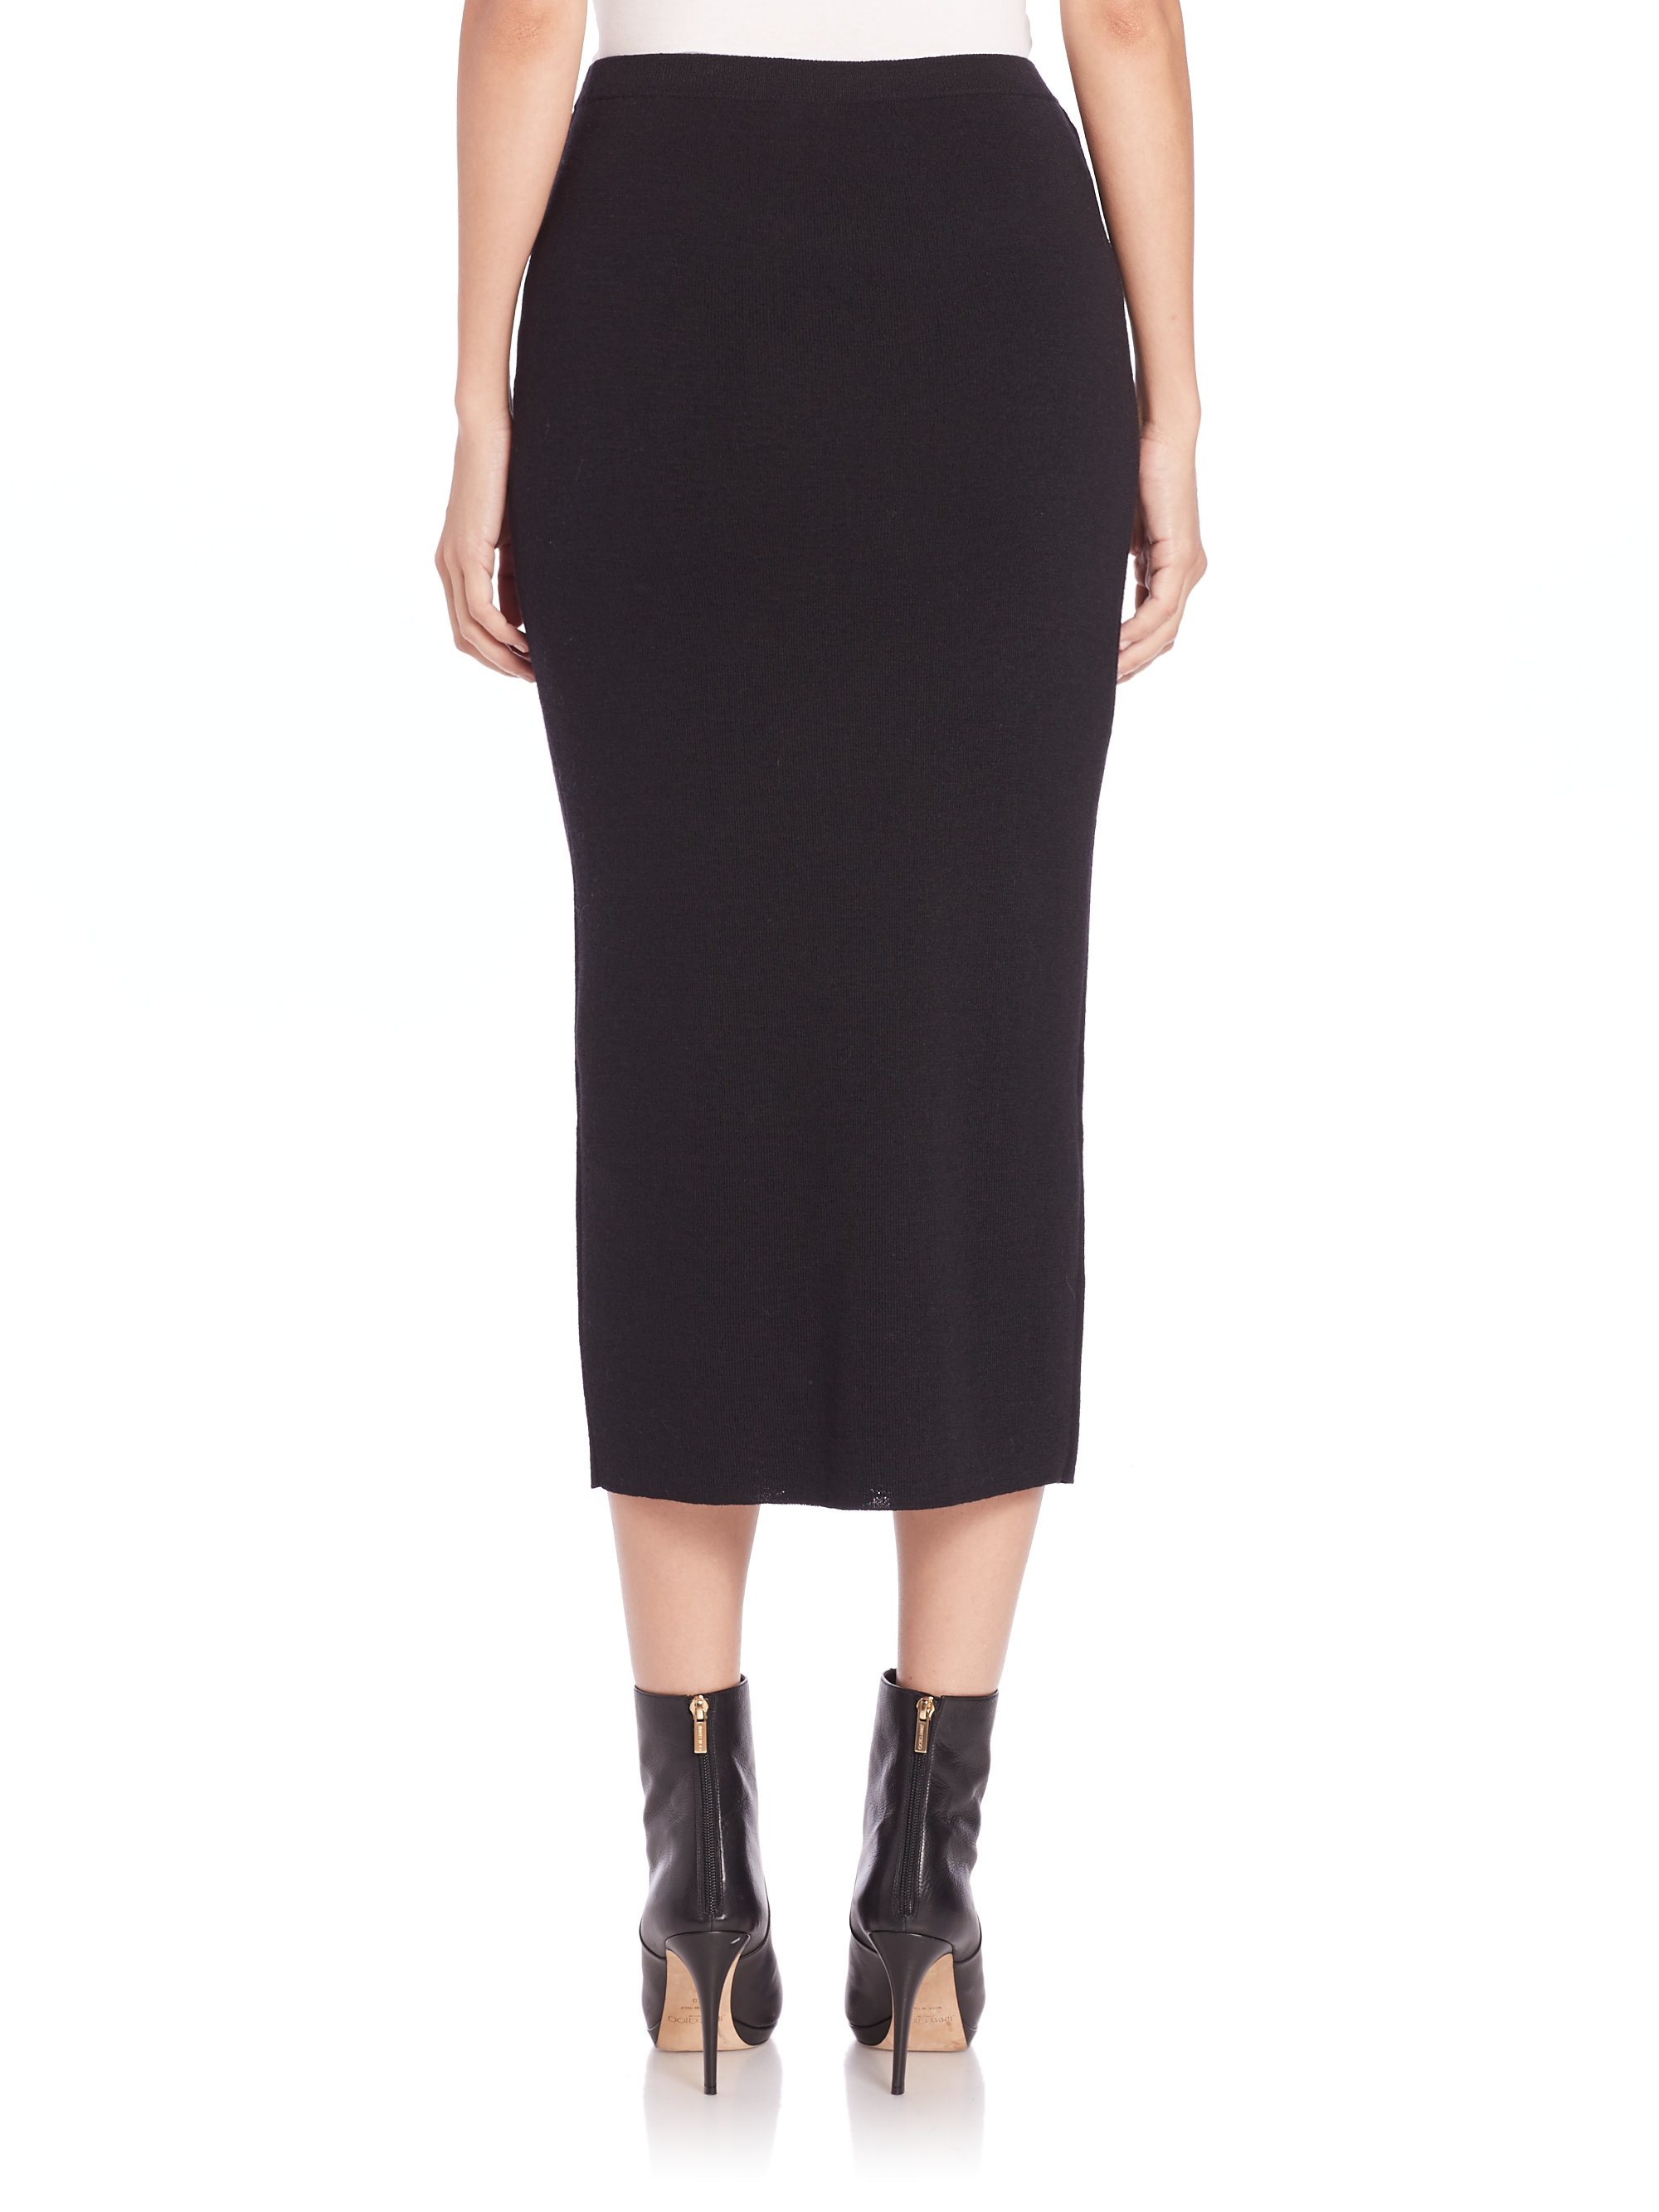 Eileen fisher Icon Wool Pencil Skirt in Black | Lyst